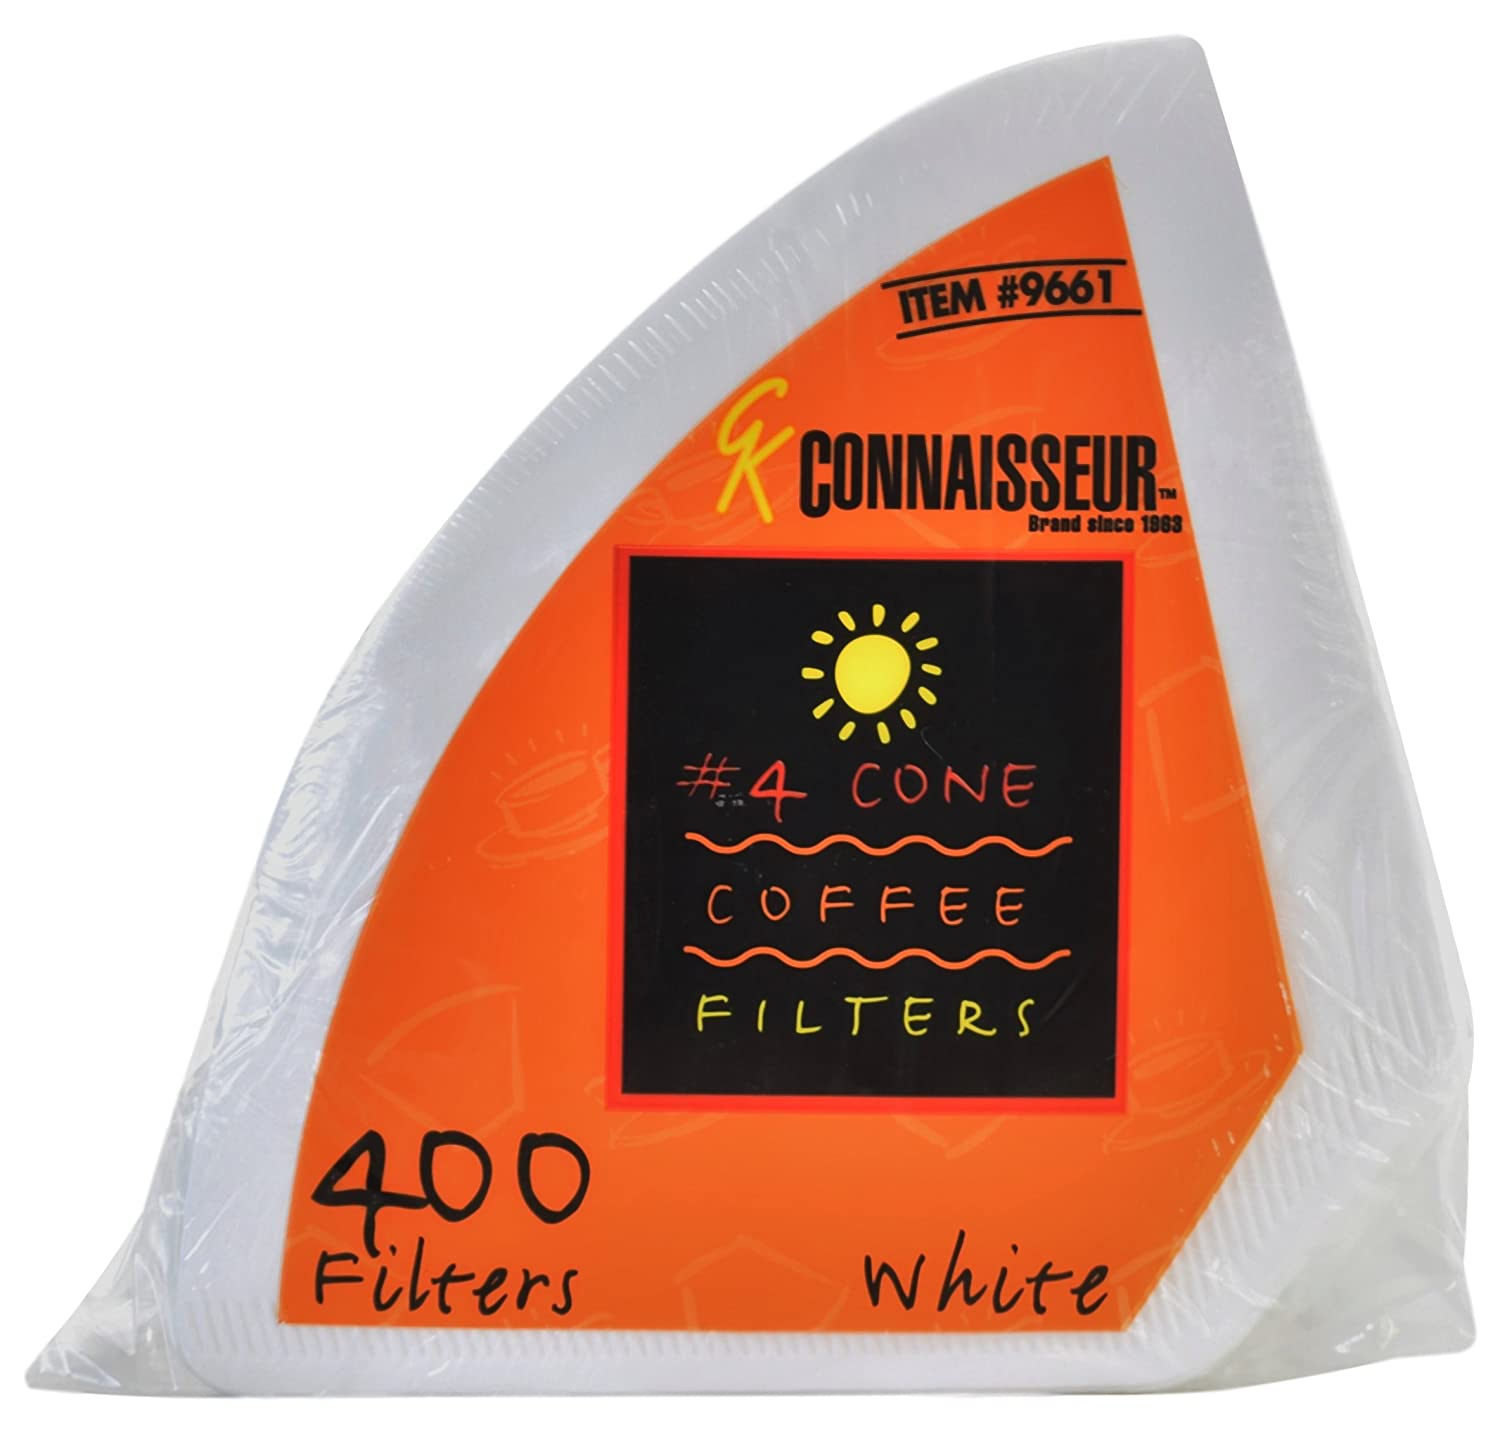 Connaisseur # 4 Cone White Coffee Filters, 400 Count Pack